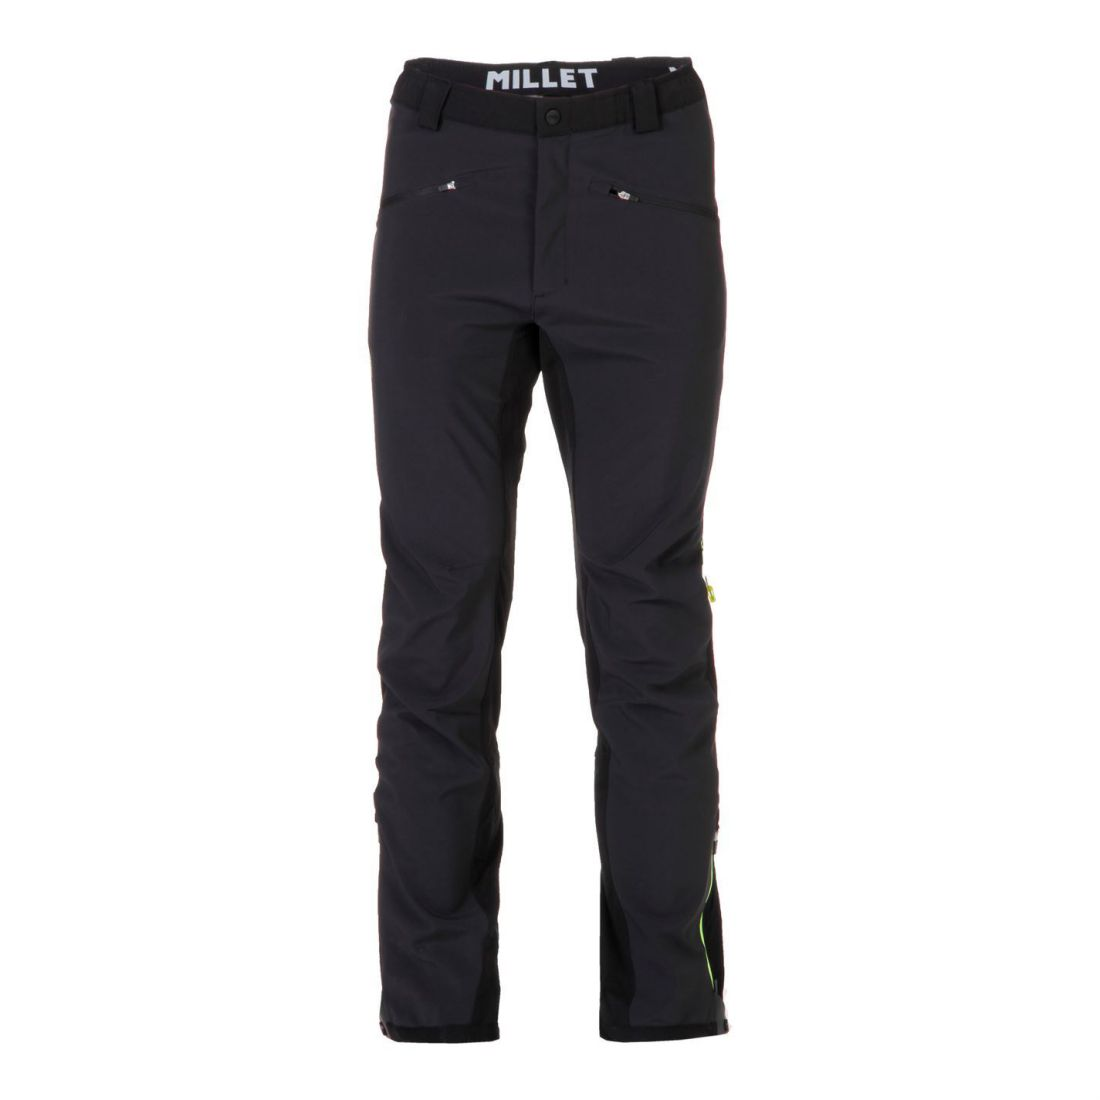 Image is loading Millet-Mens-Touring-Ski-Pants-Salopettes-Trousers-Bottoms b63cec042